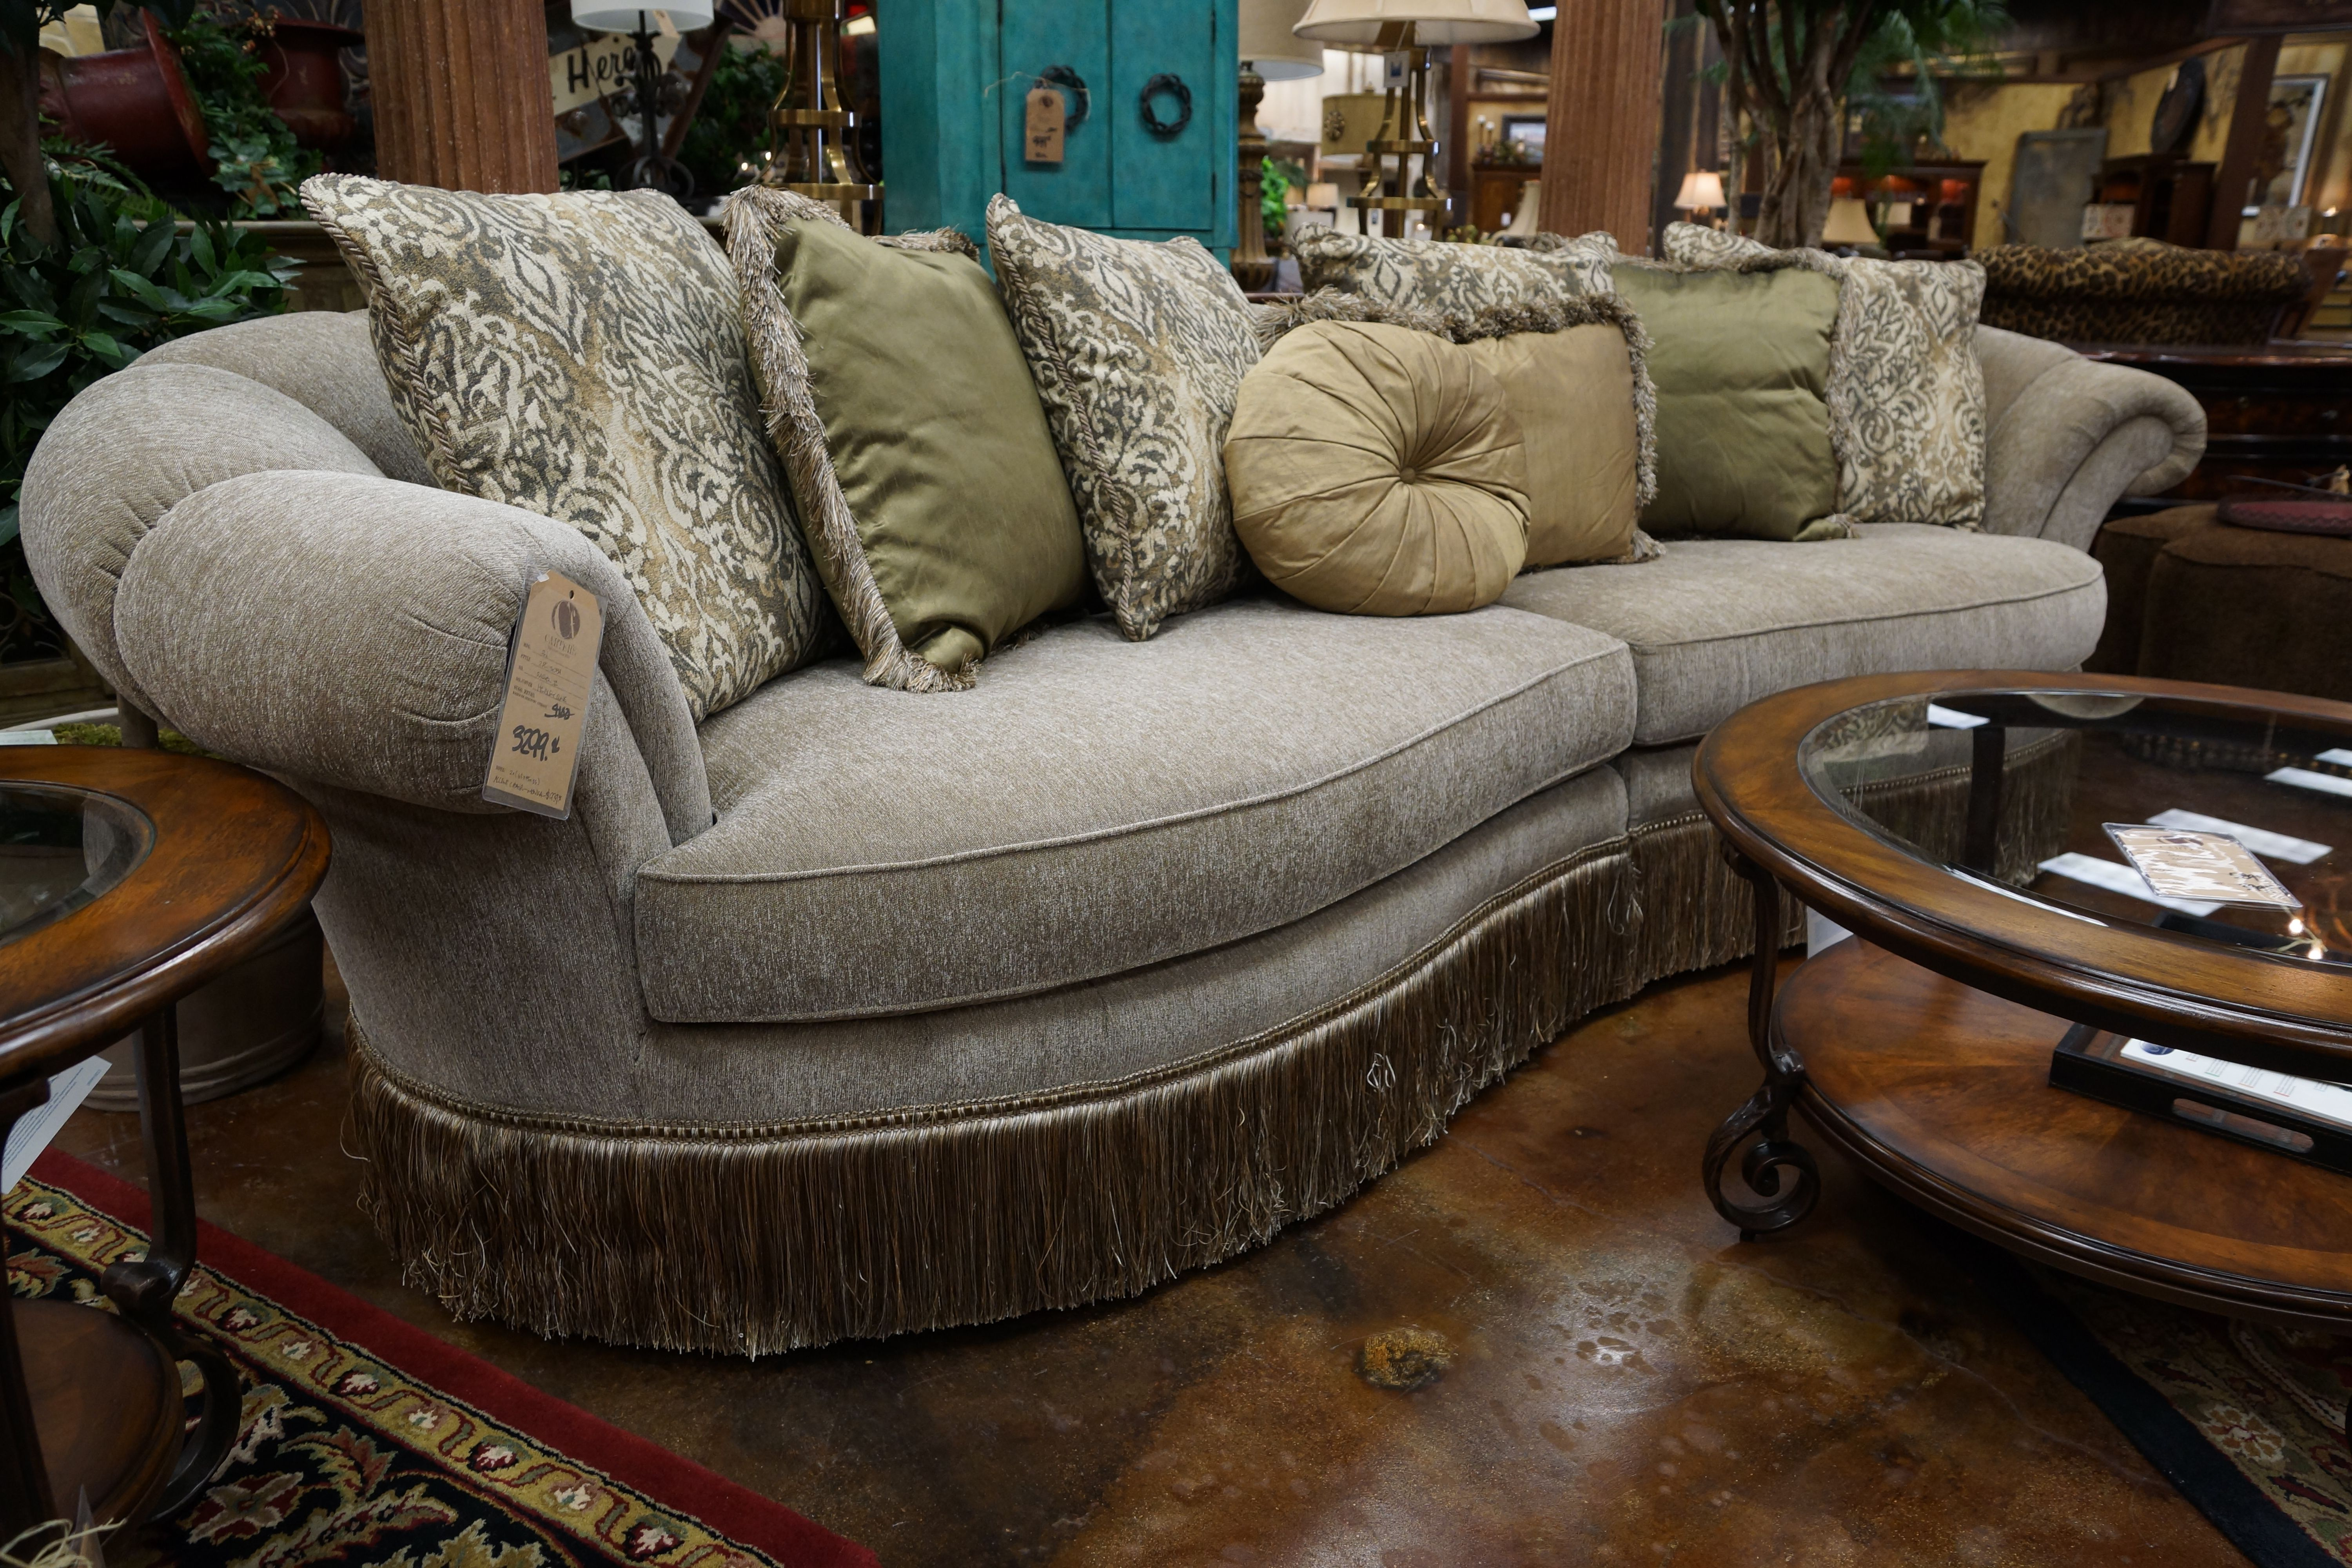 High Quality Available At CARTERu0027S FURNITURE In Midland, Texas 432 682 2843 Http:/